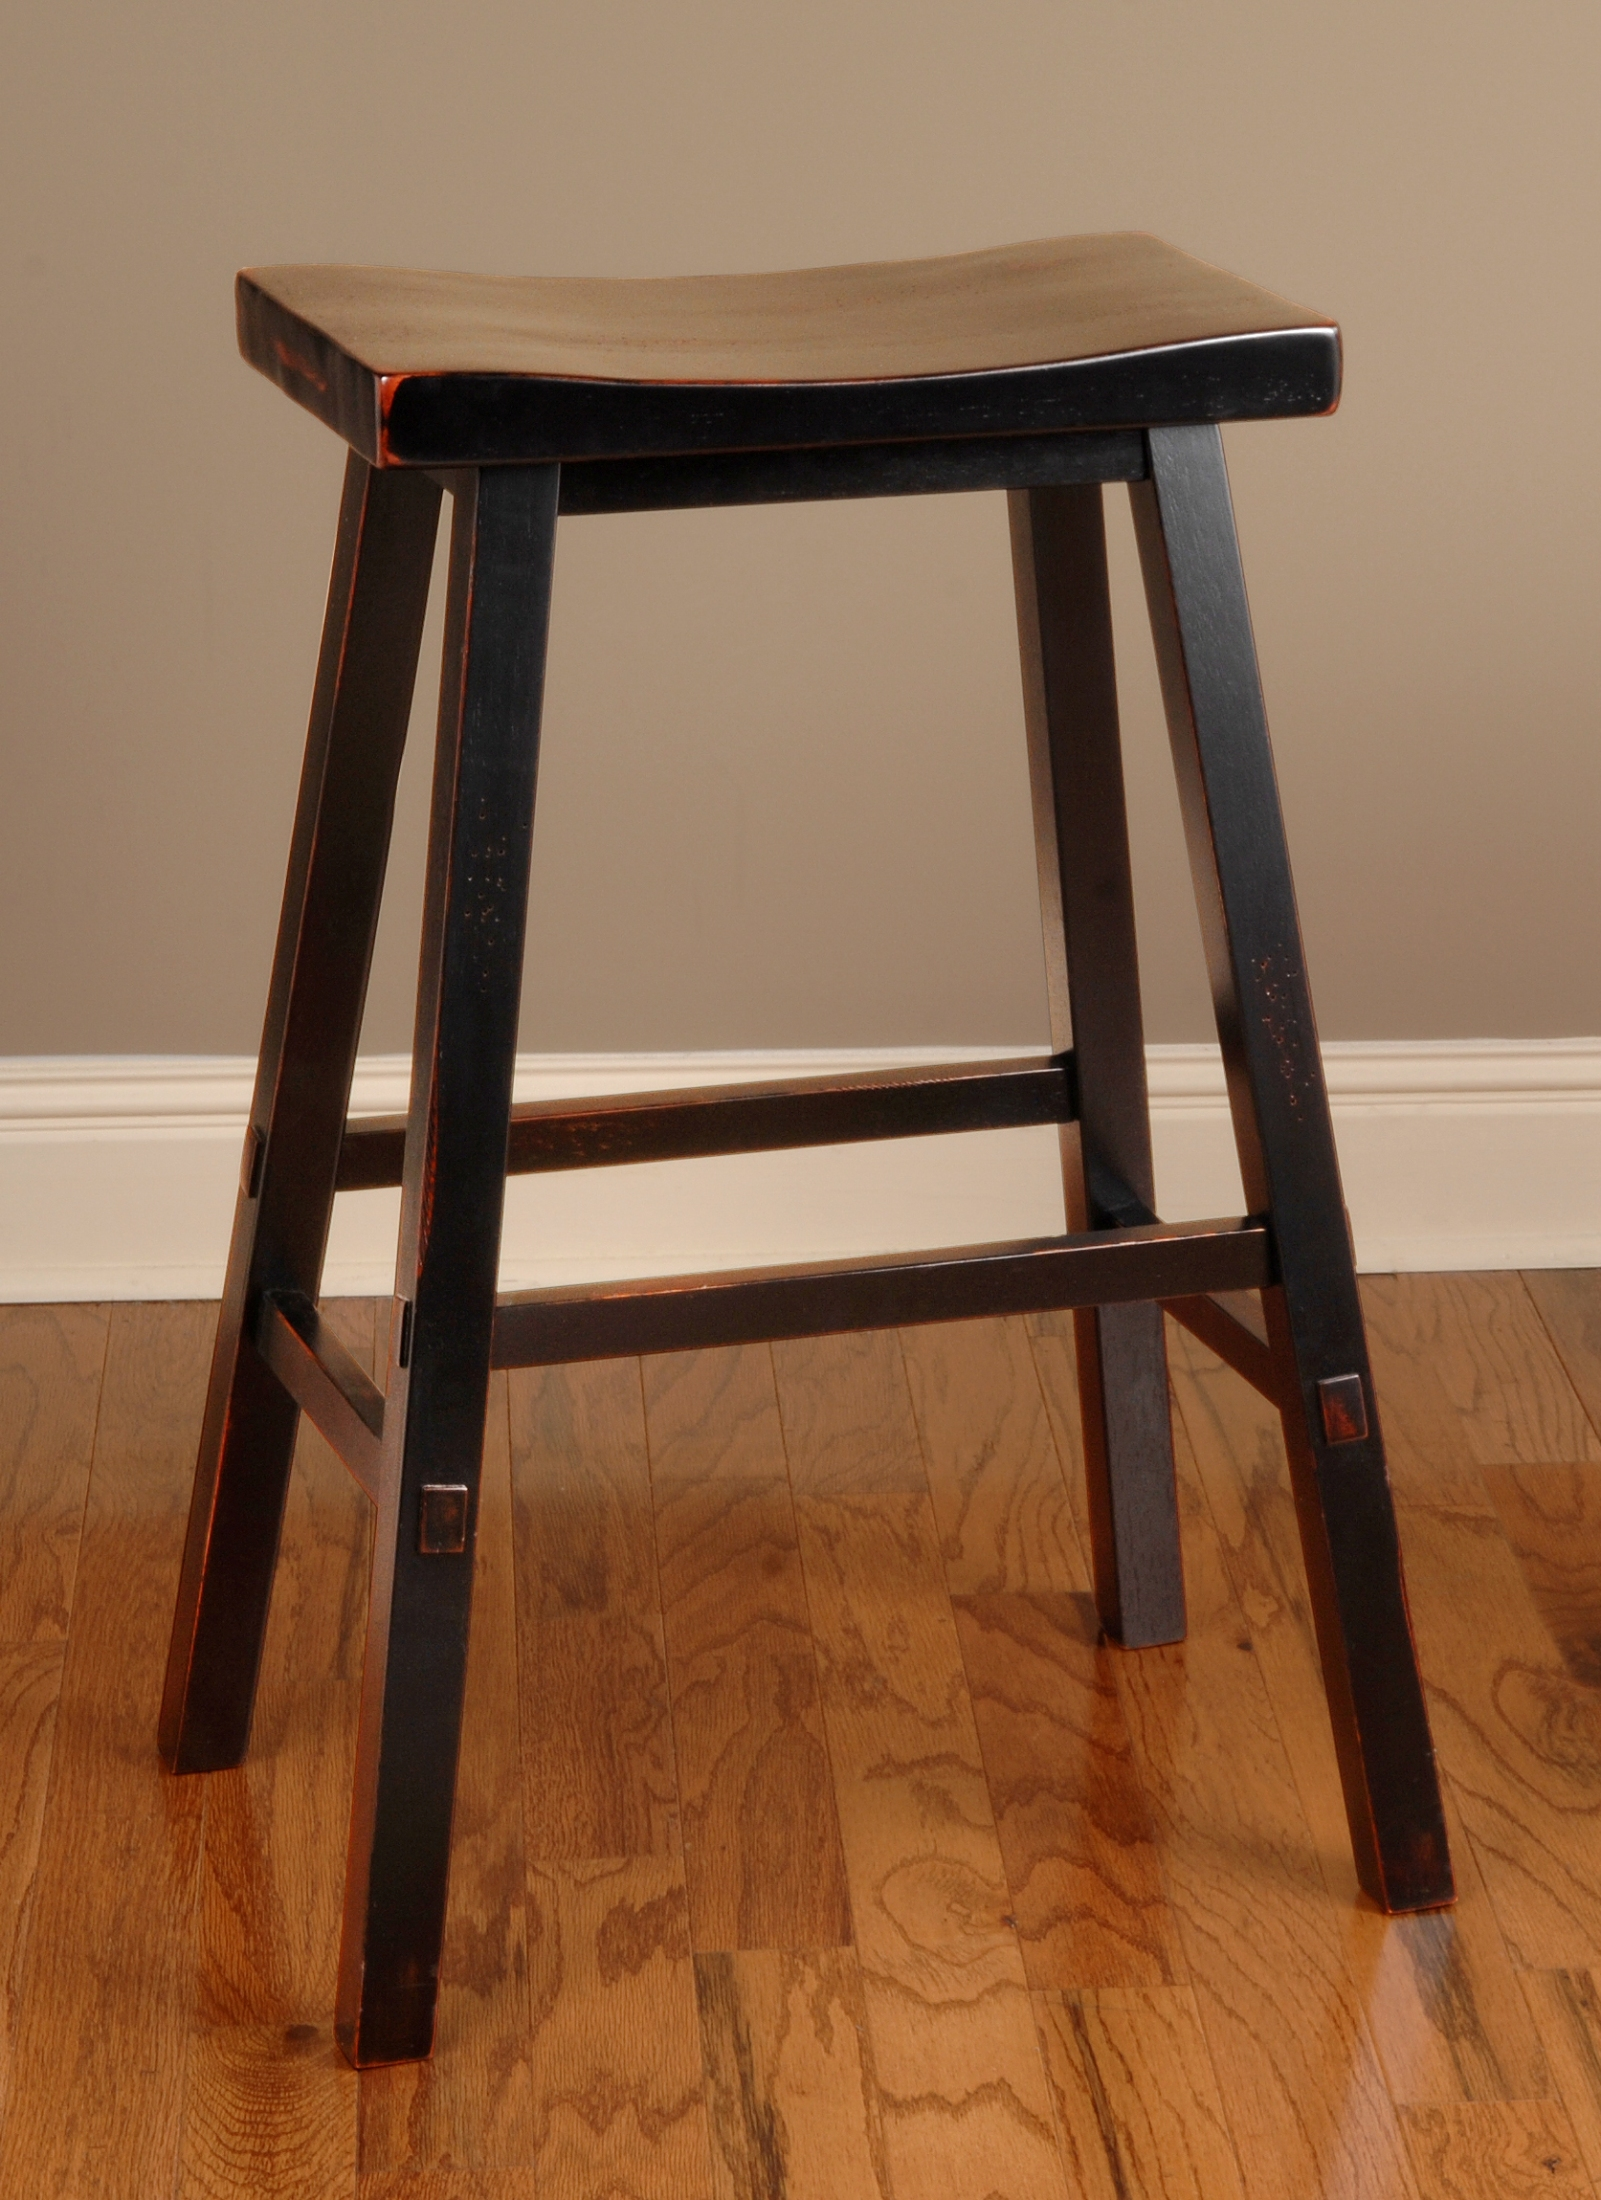 Cheap High Bar Stools Counter Height Stools Buy Discount Counter Height Chairs